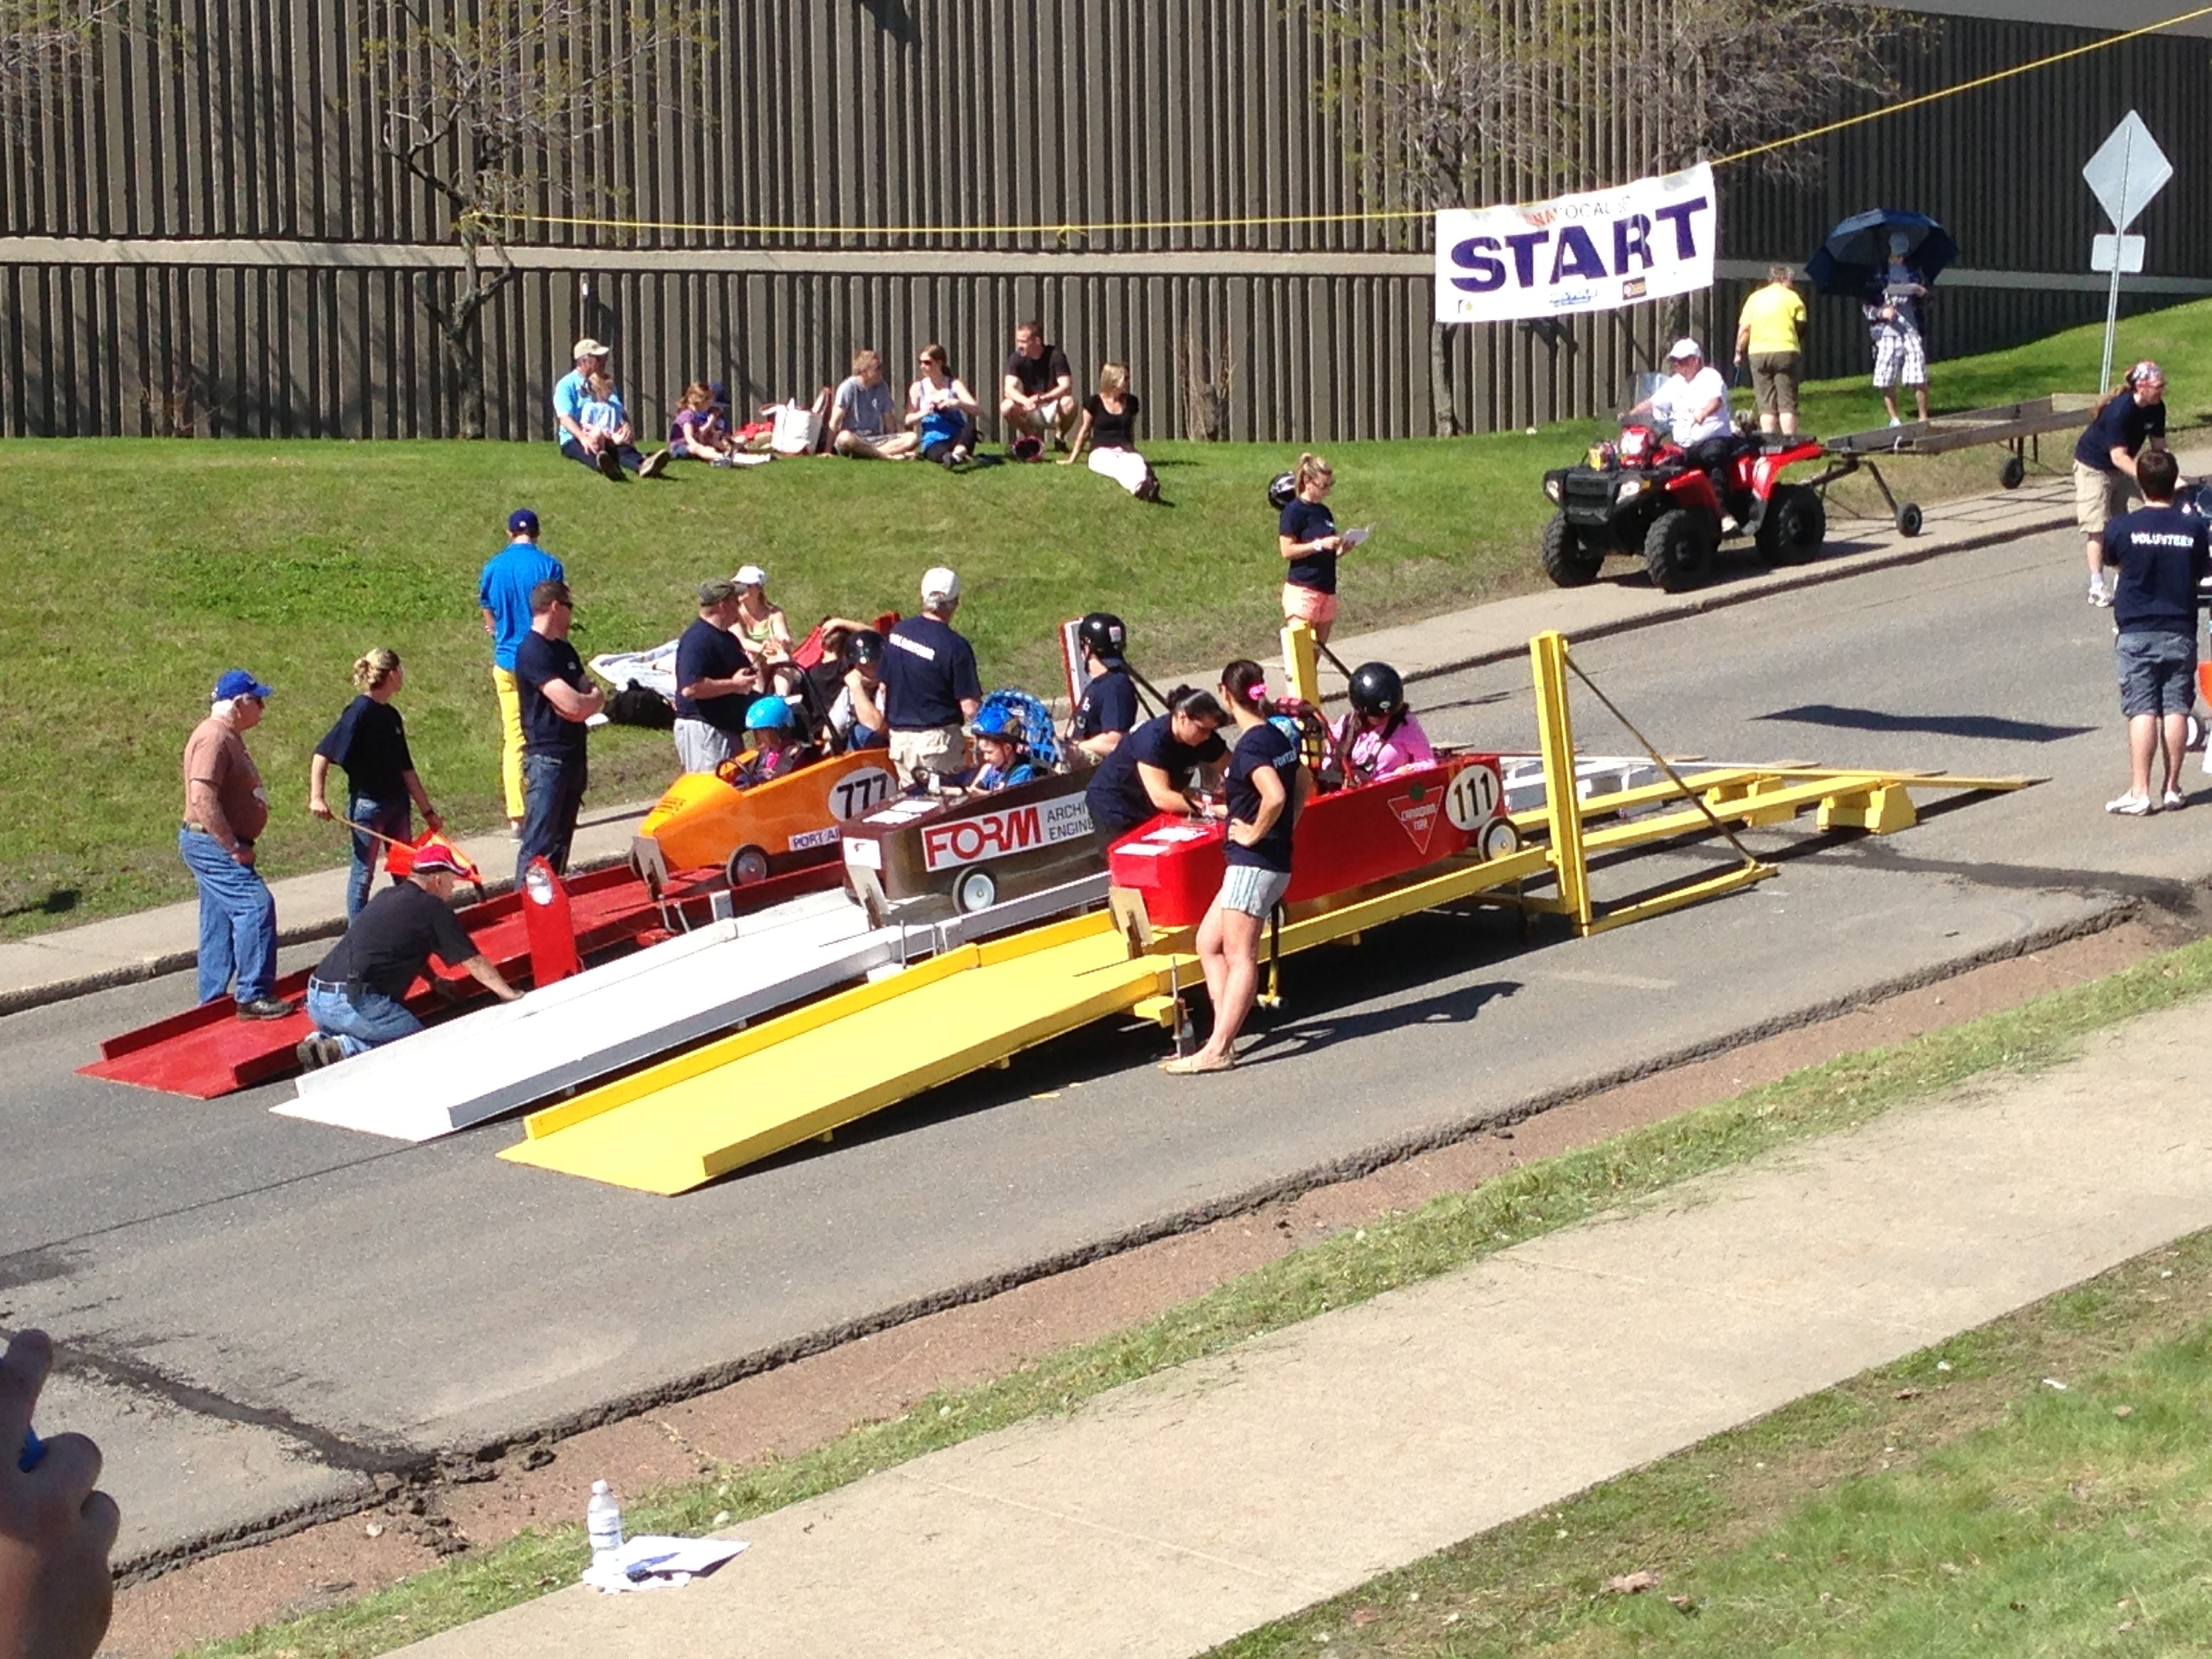 Experiencing the Thrill of the Hill: The Soapbox Races